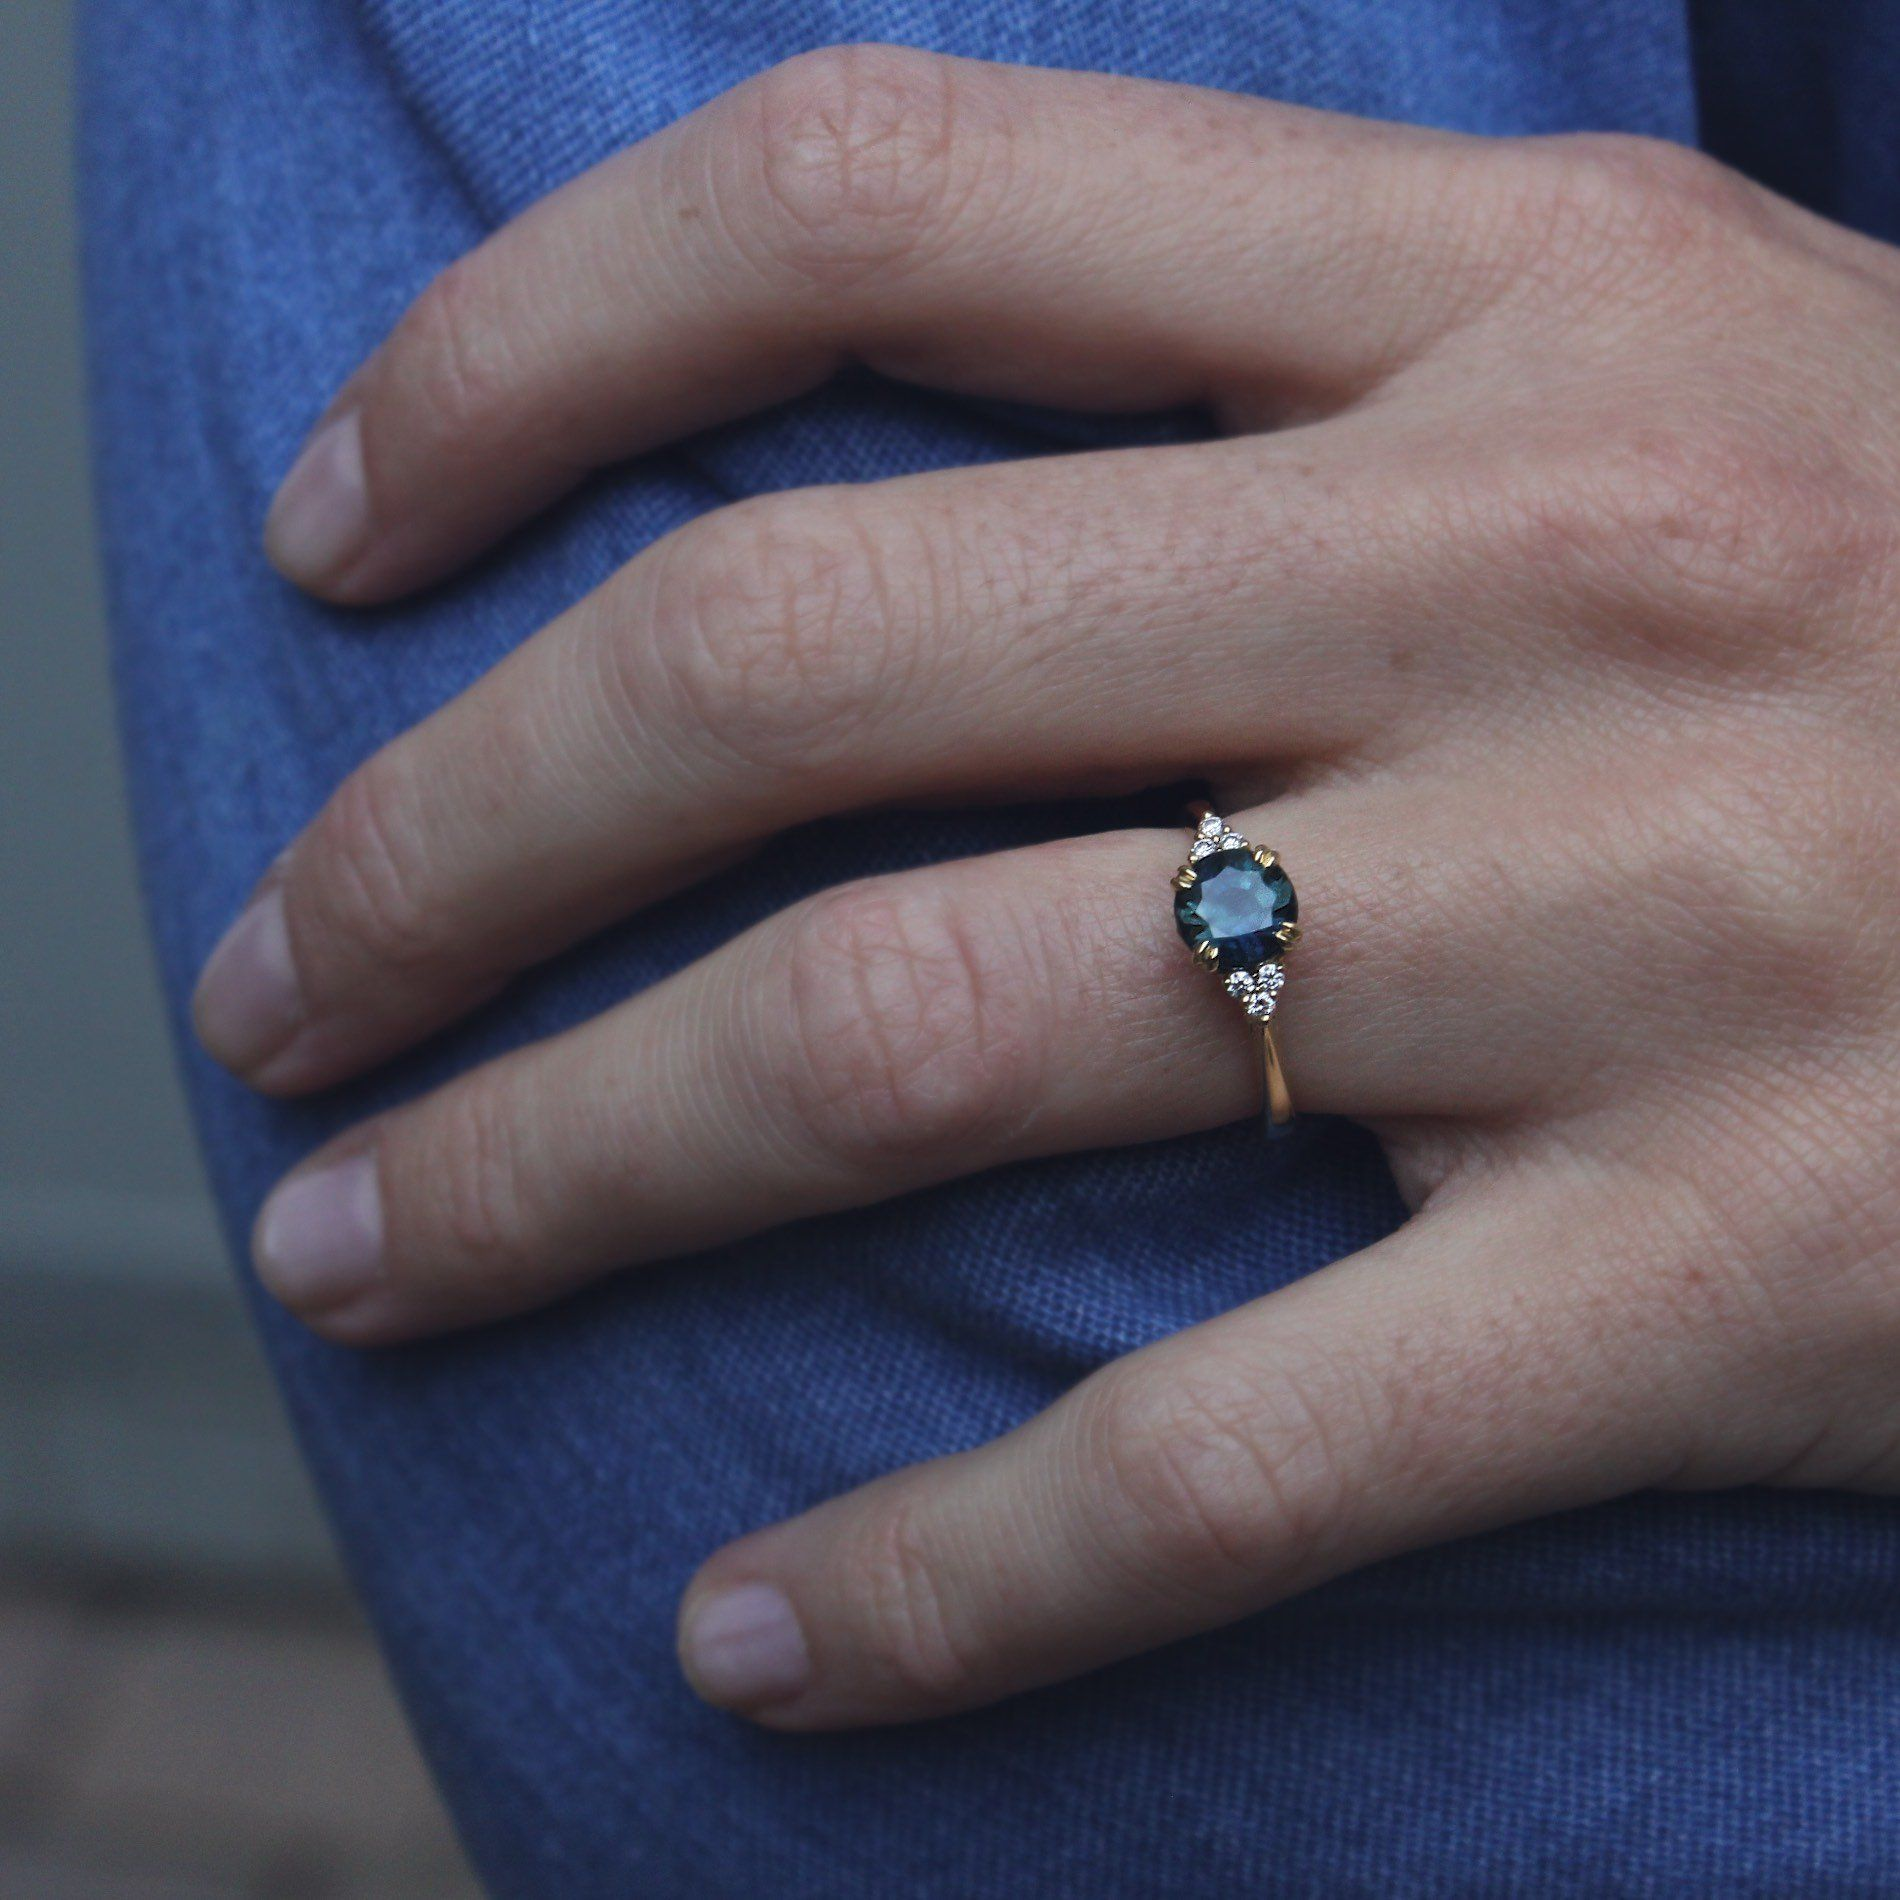 Teal Sapphire Engagement Ring with Diamond Detailing